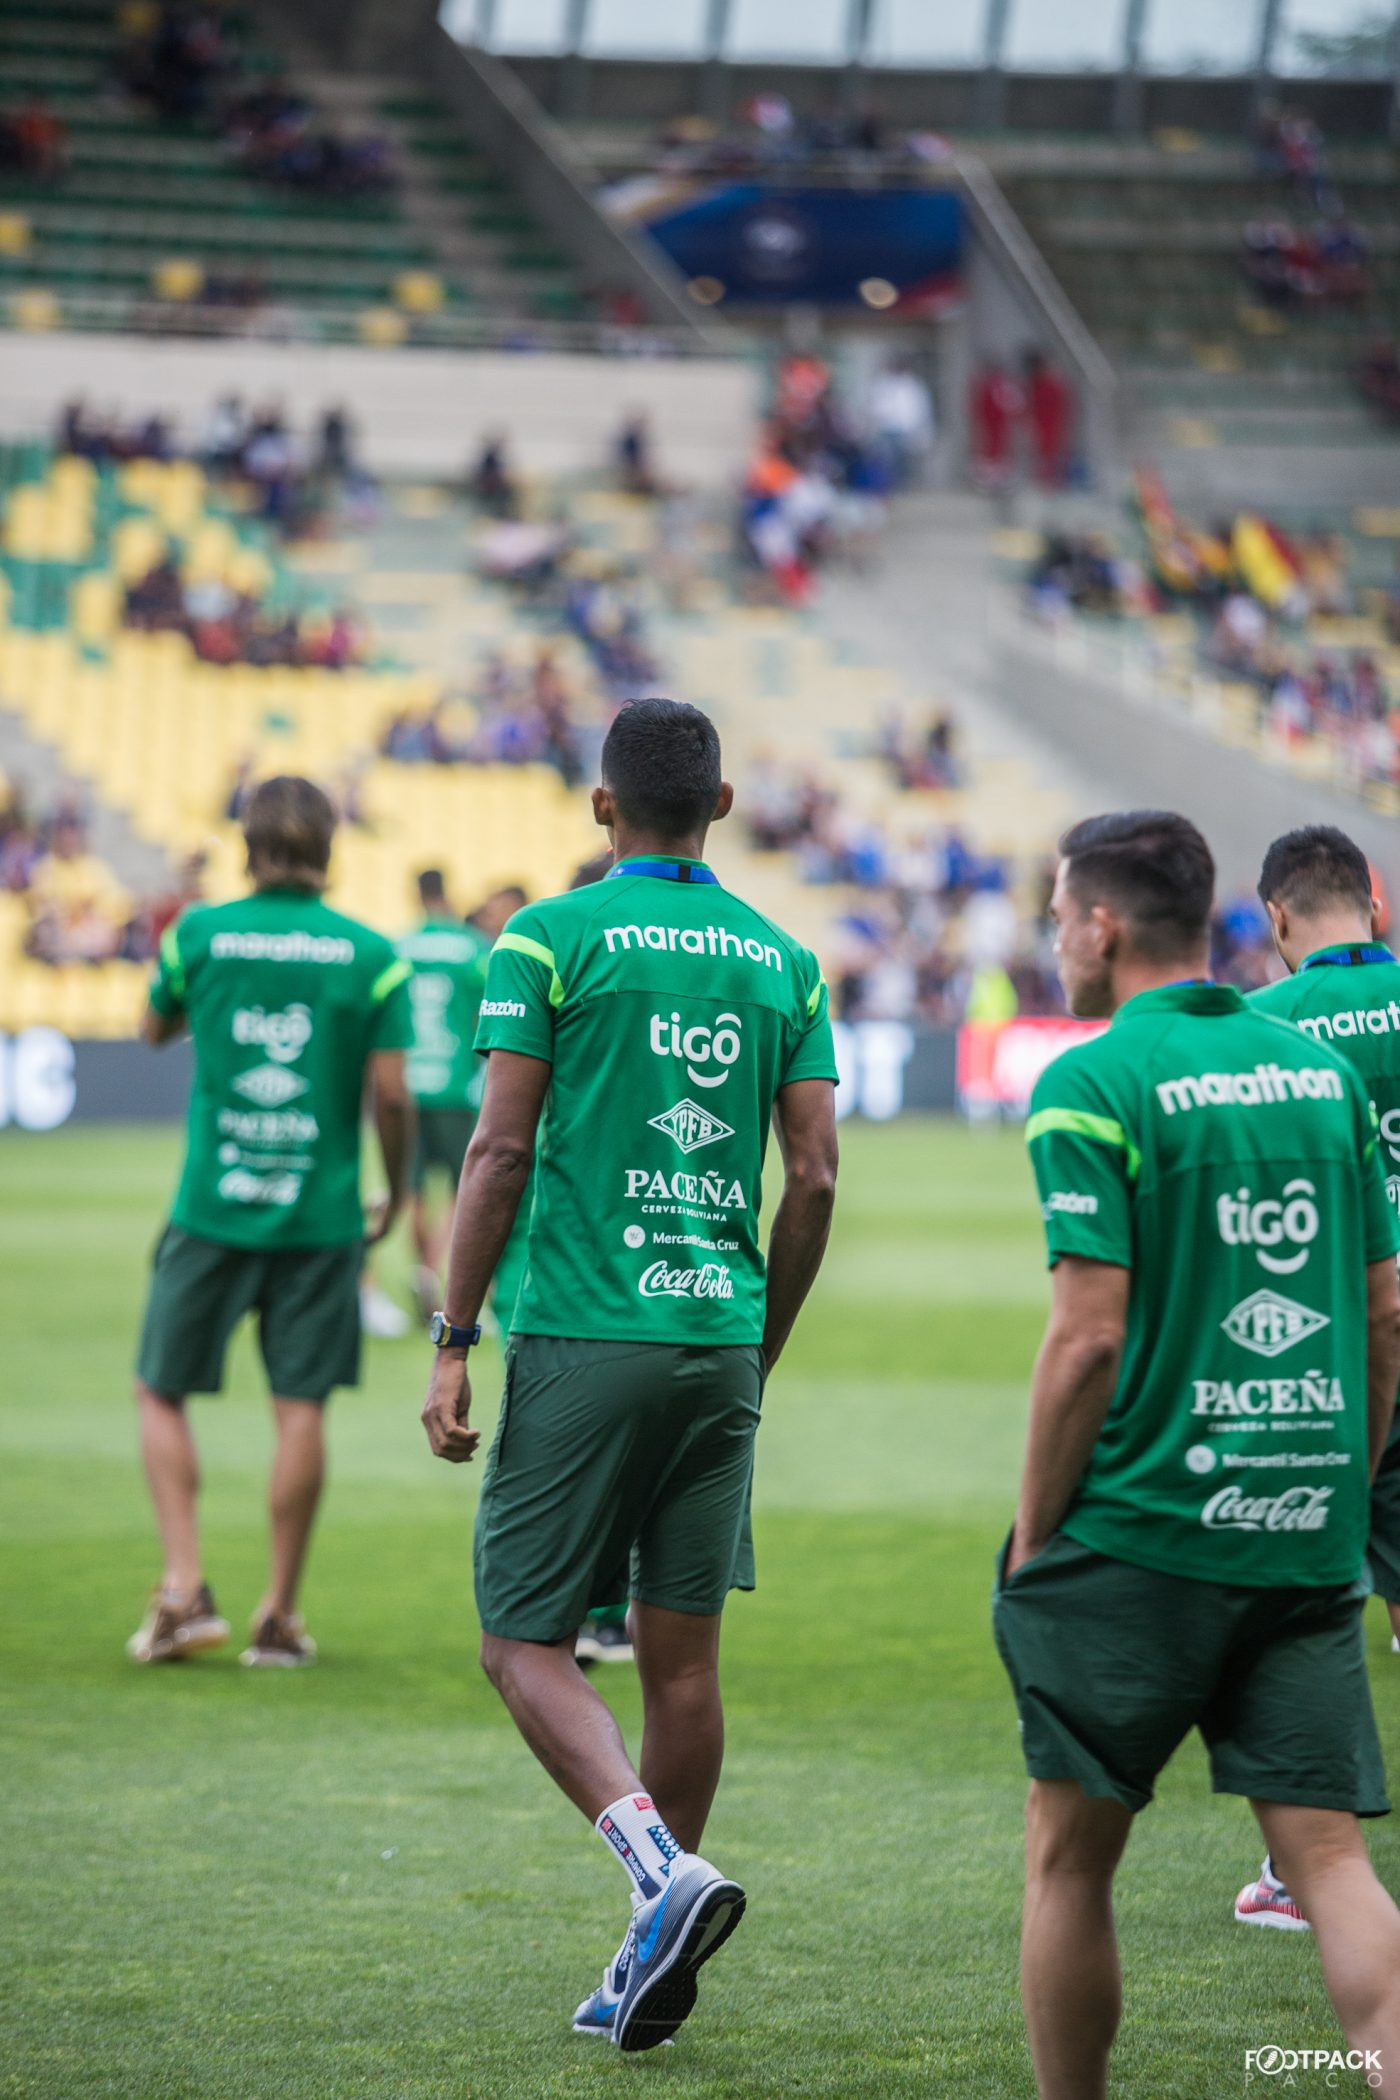 france-bolivie-match-amical-nantes-beaujoire-juin-2019-footpack-3